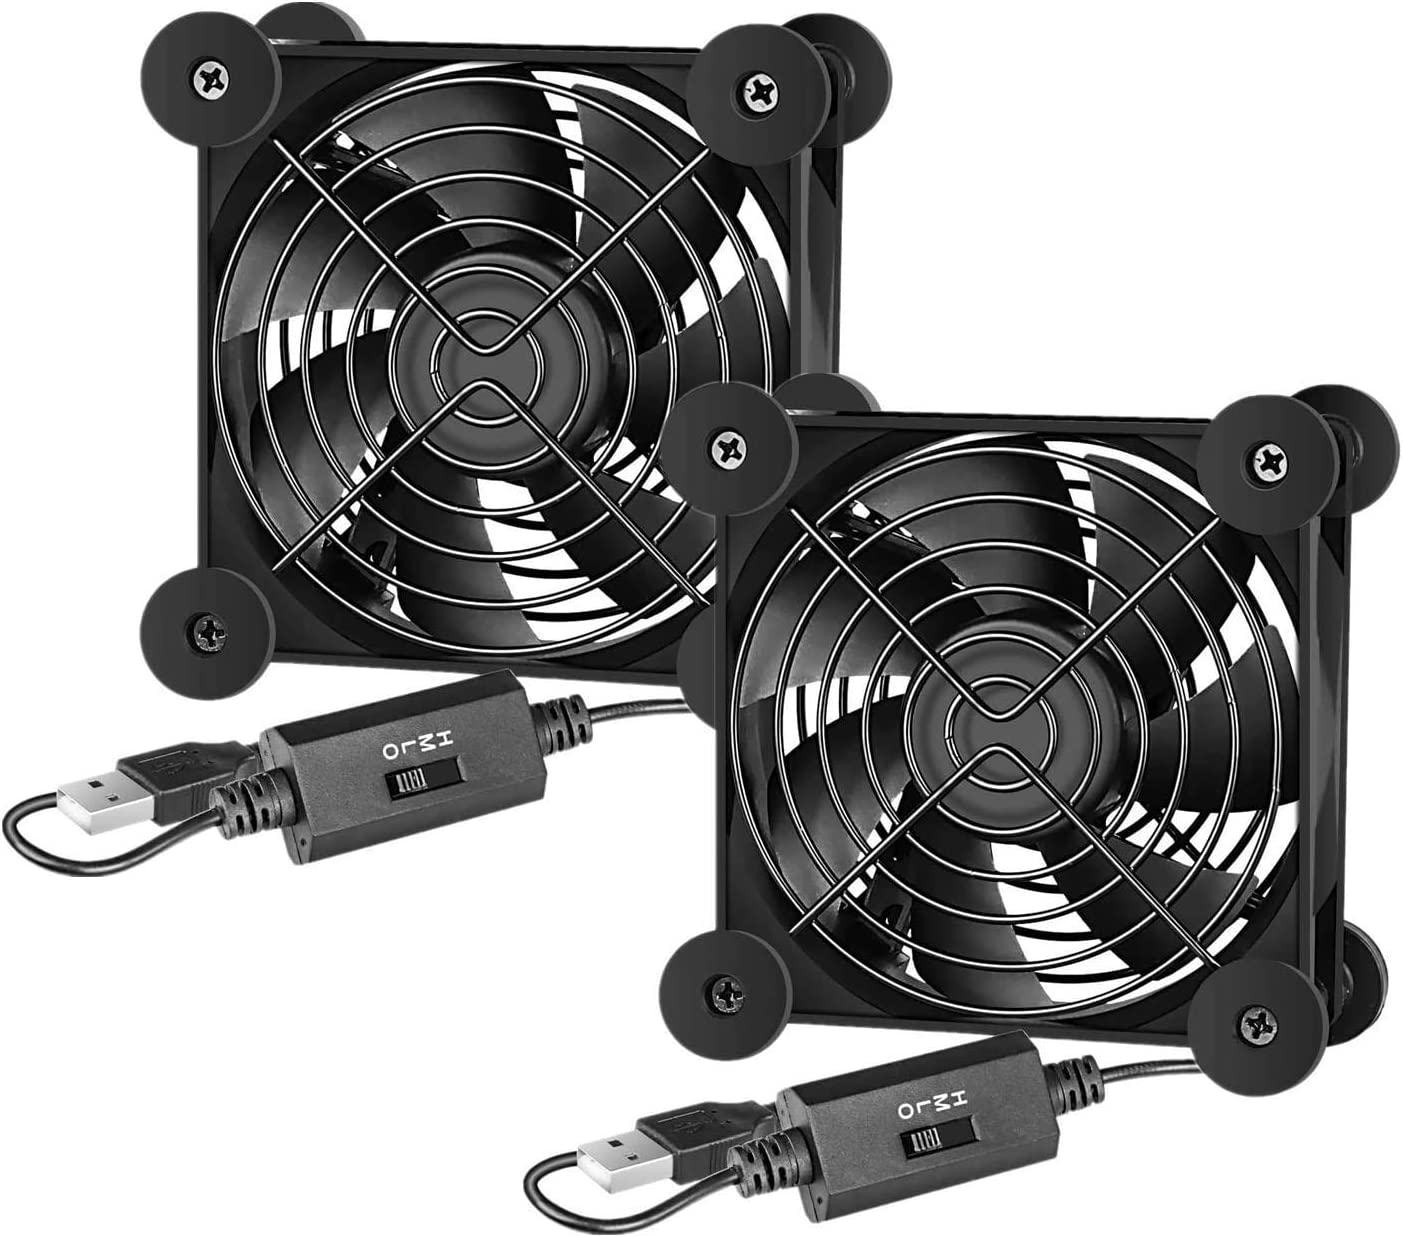 Simple Deluxe 2-Pack 80mm Quiet USB Fan with Multi-Speed Controller, High Performance Cooling Fan for Receiver Router DVR Playstation, Xbox Computer Cabinet Cooling